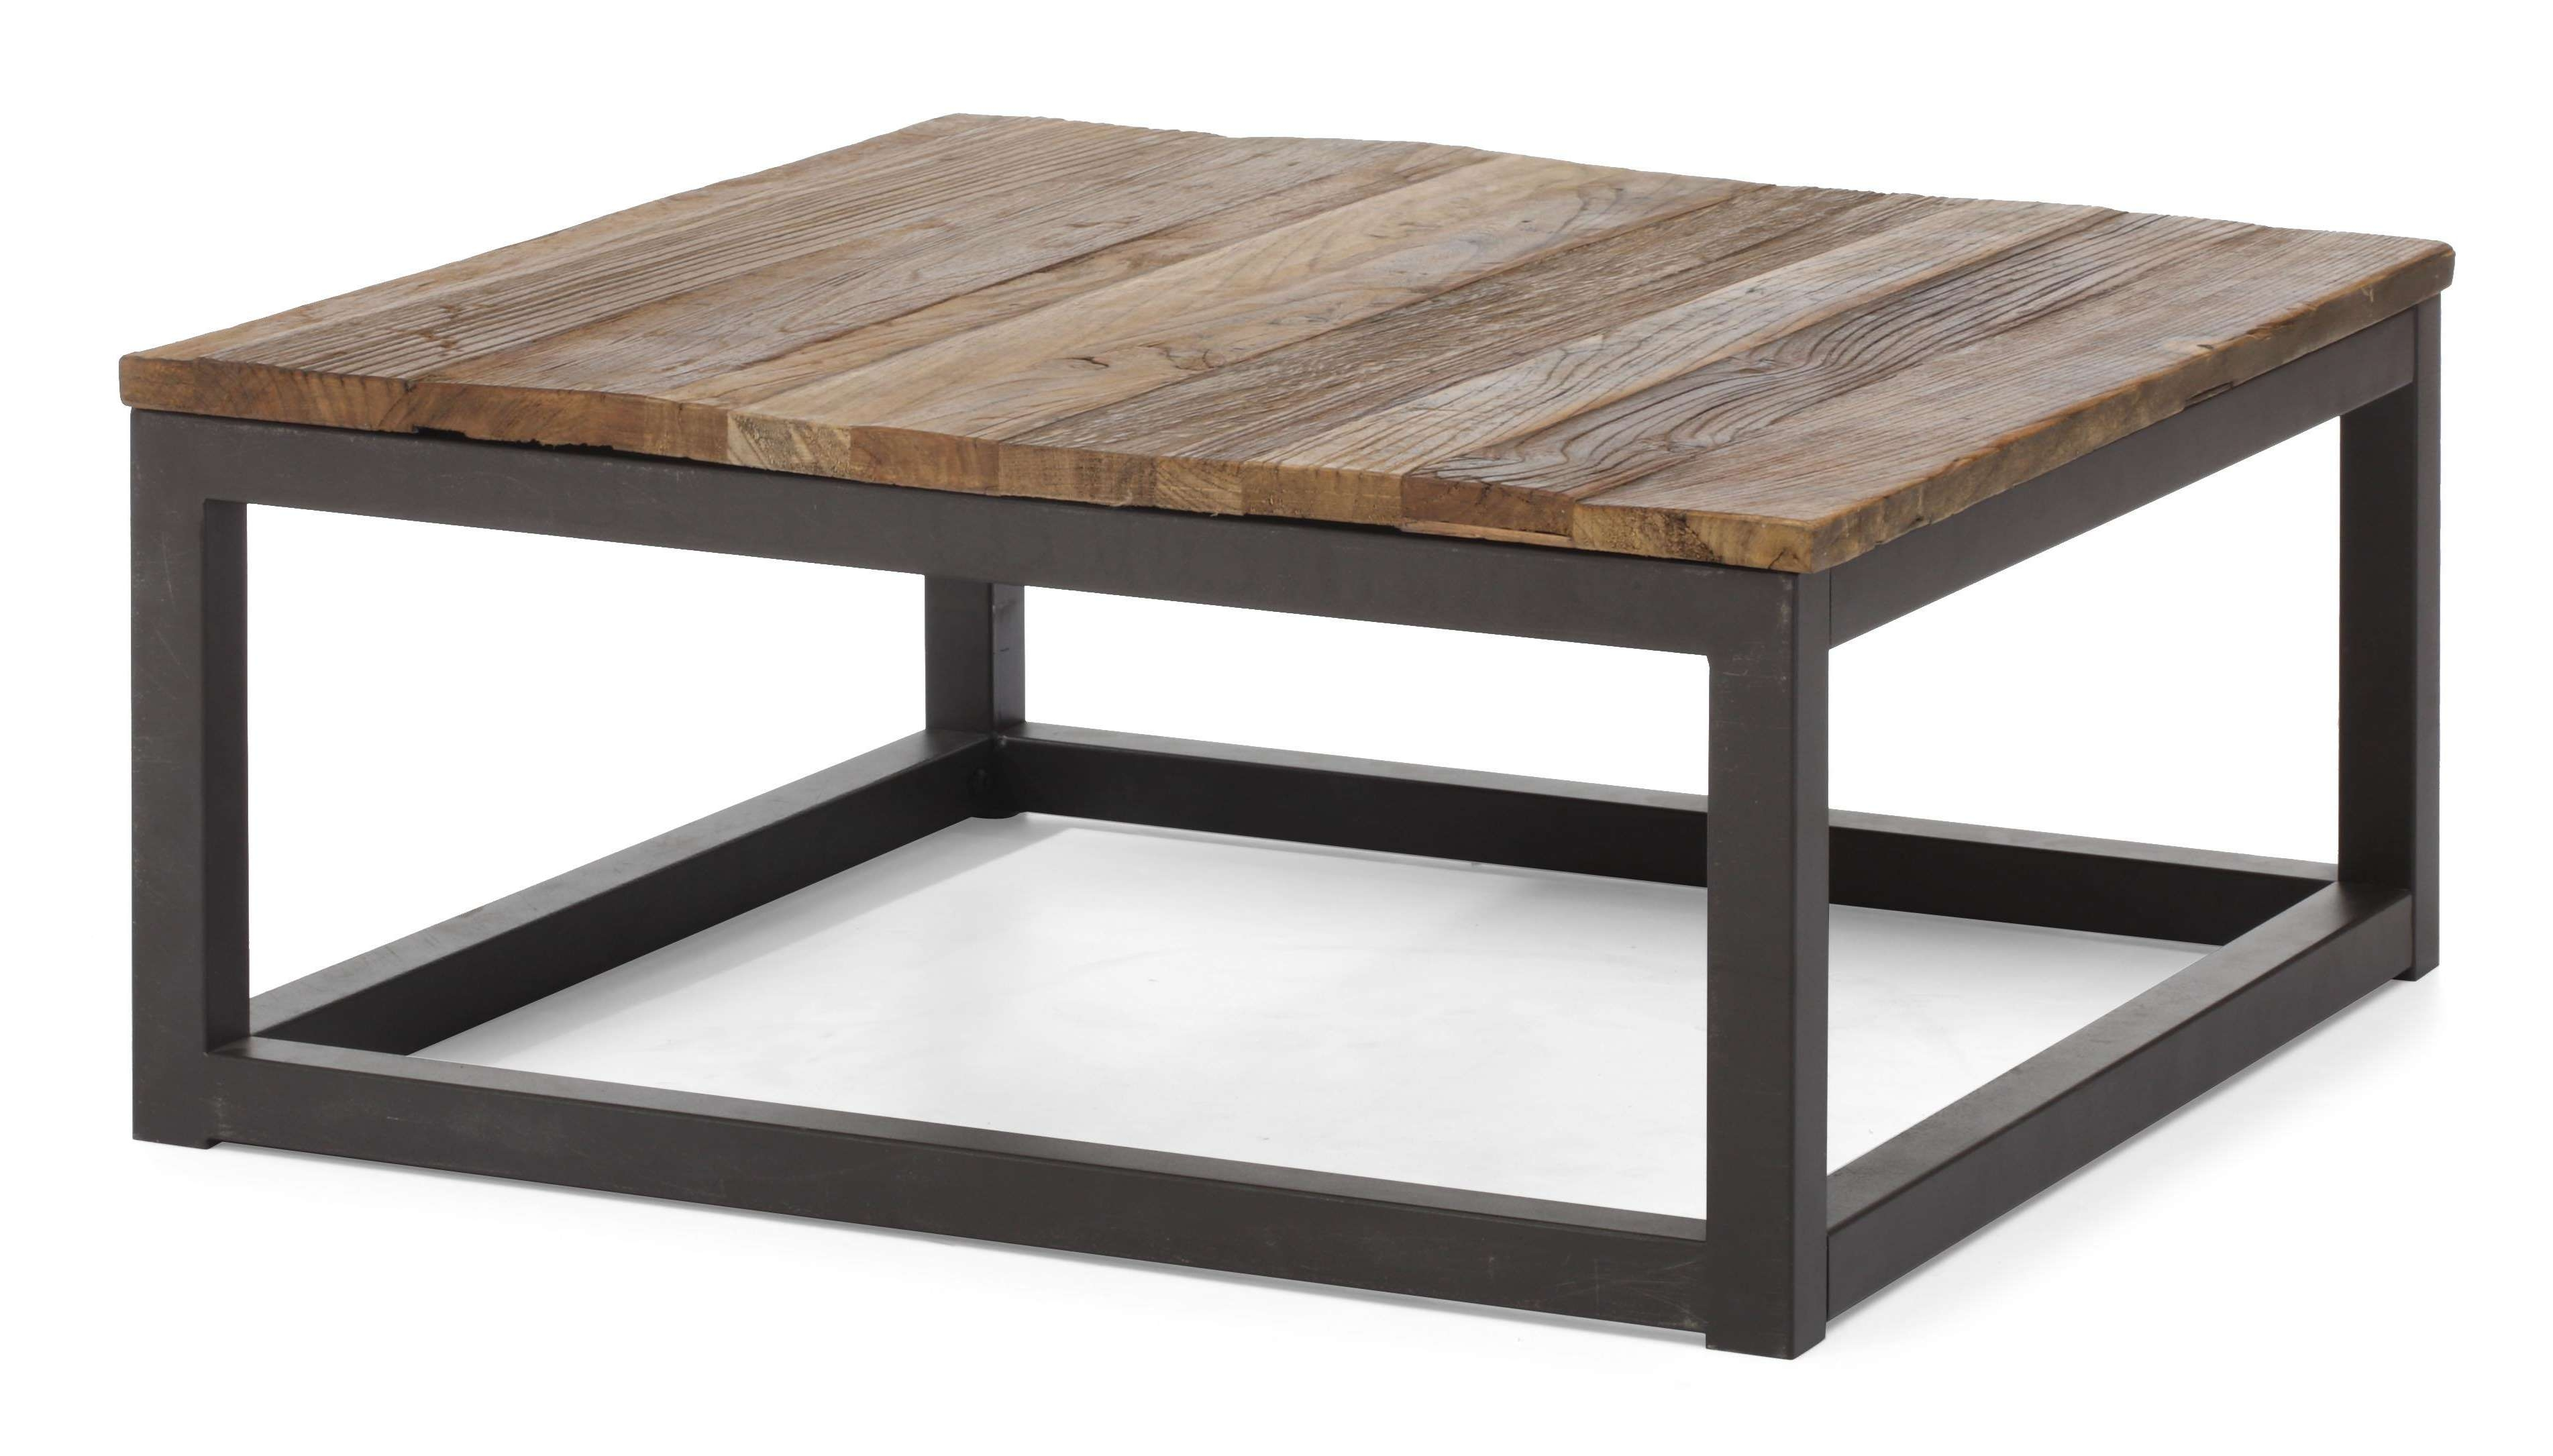 Coffee Table : Awesome Light Wood Coffee Table Coffee Table Plans Throughout Well Known Odd Shaped Coffee Tables (View 11 of 20)